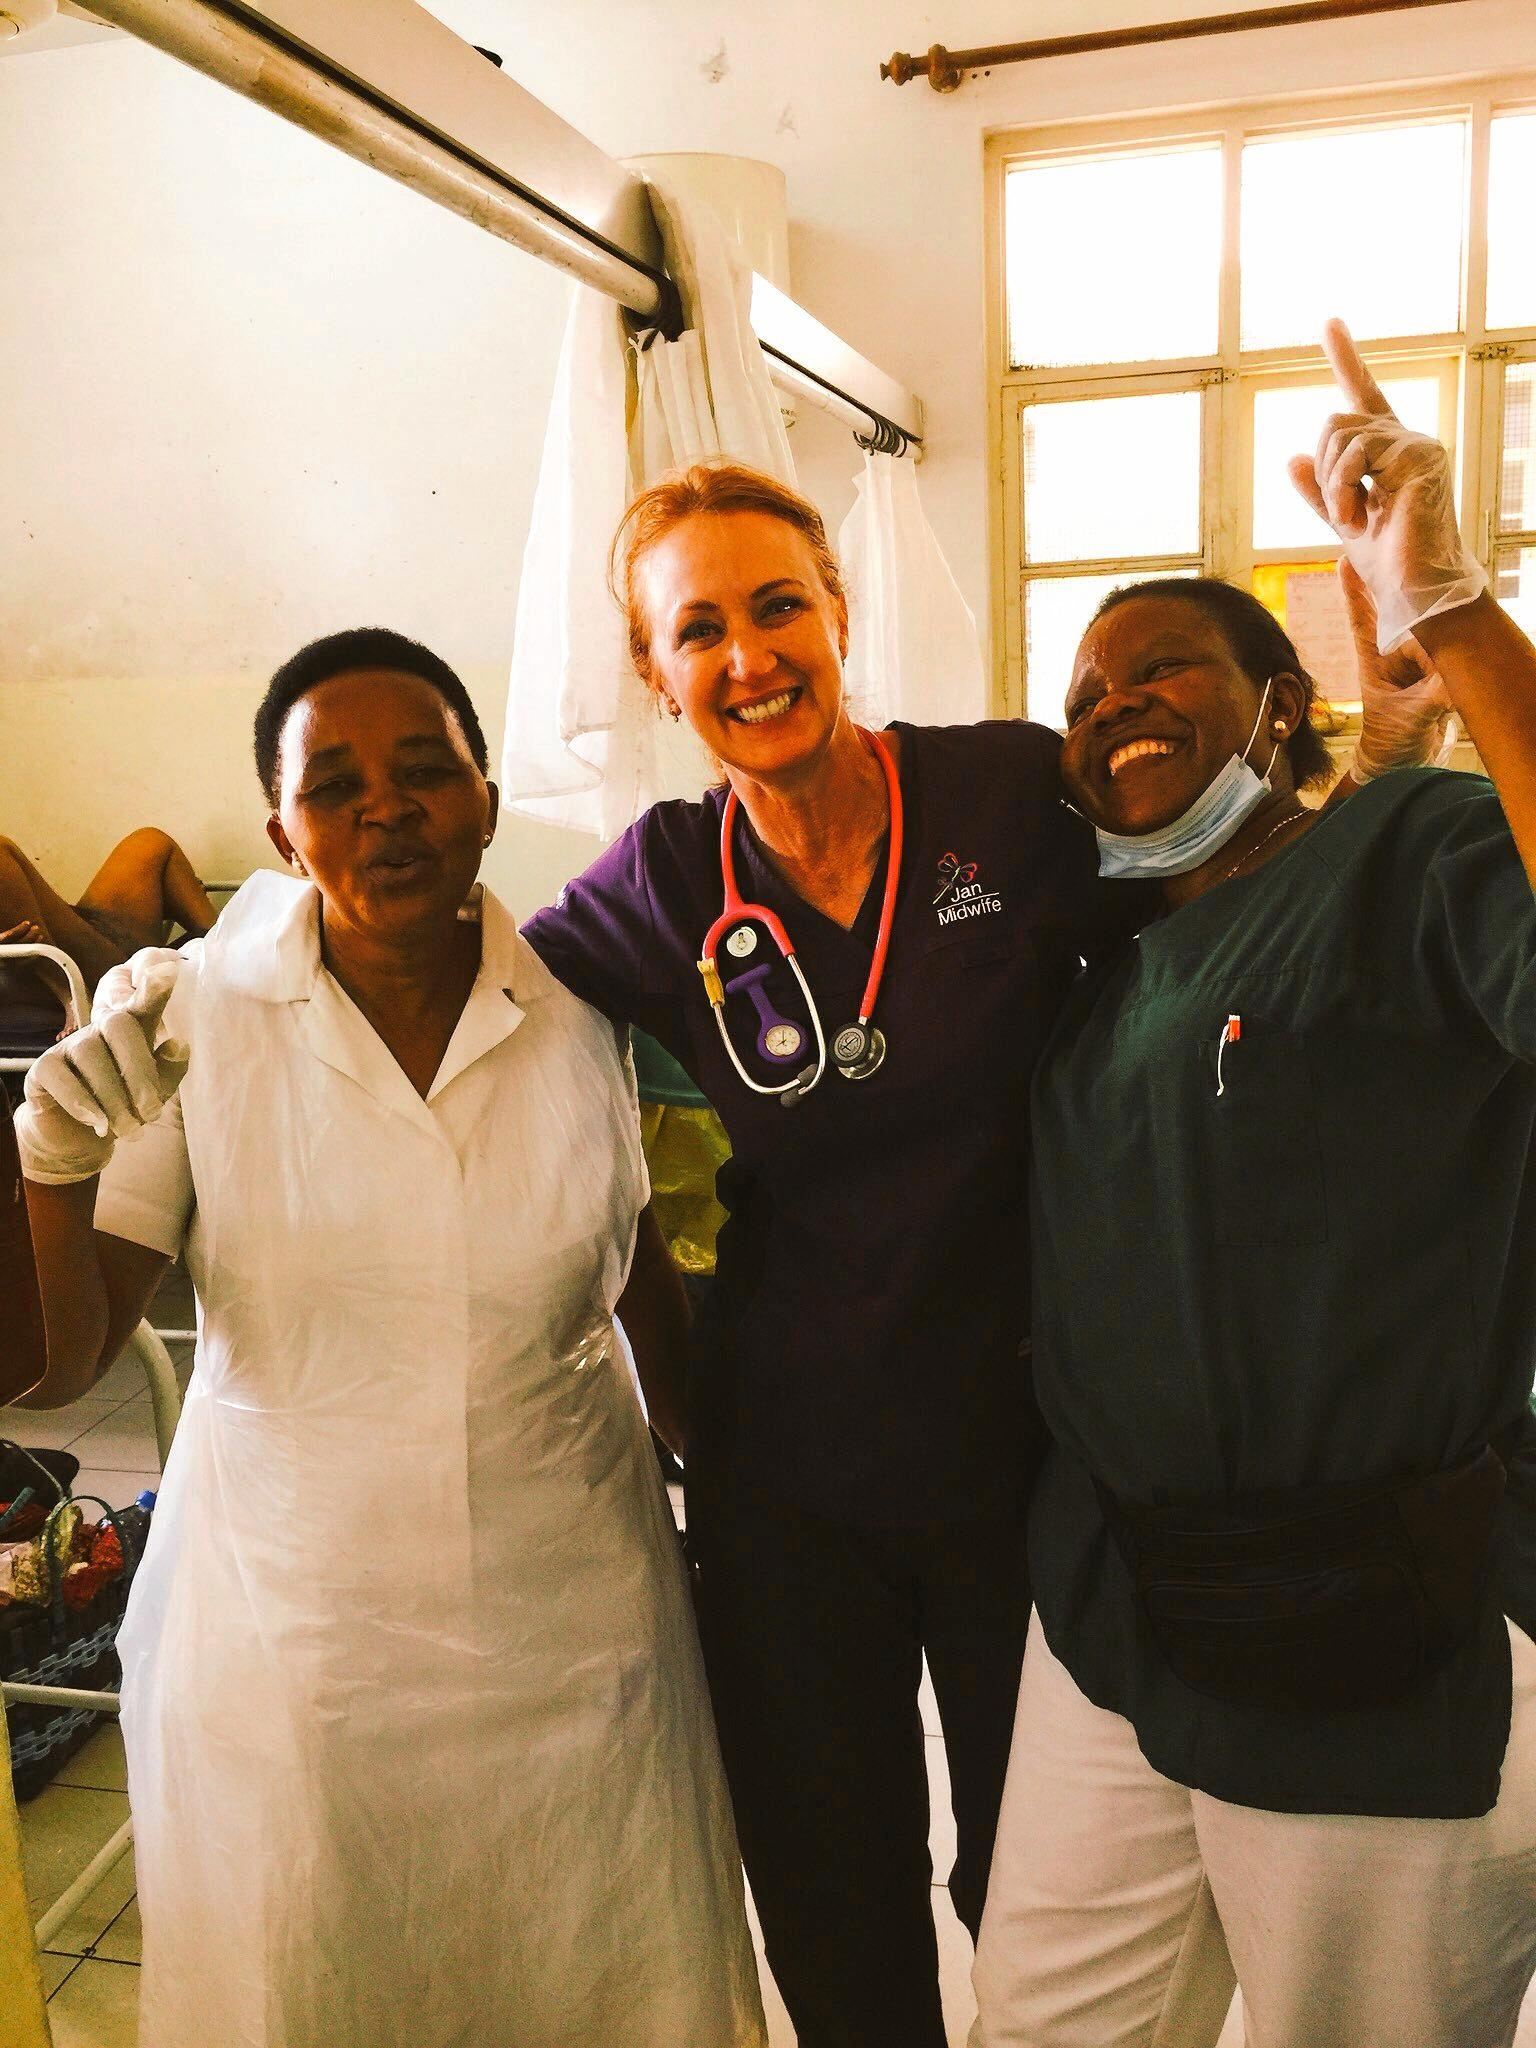 Sunny Coast midwife Jan Becker volunteering in Tanzania.